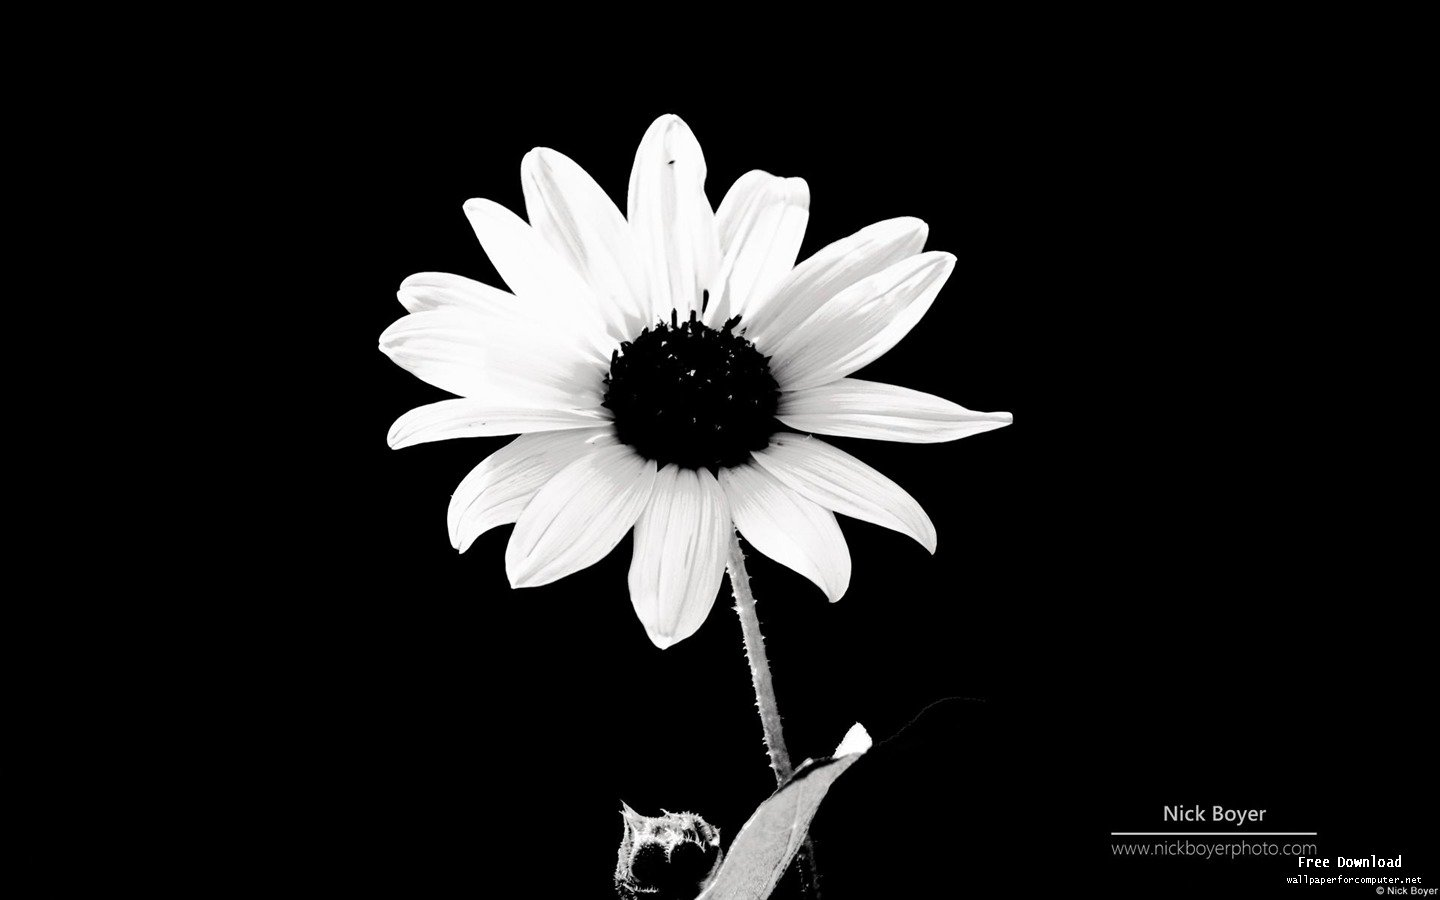 Black and White Flowers wallpaper | 1440x900 | #51486